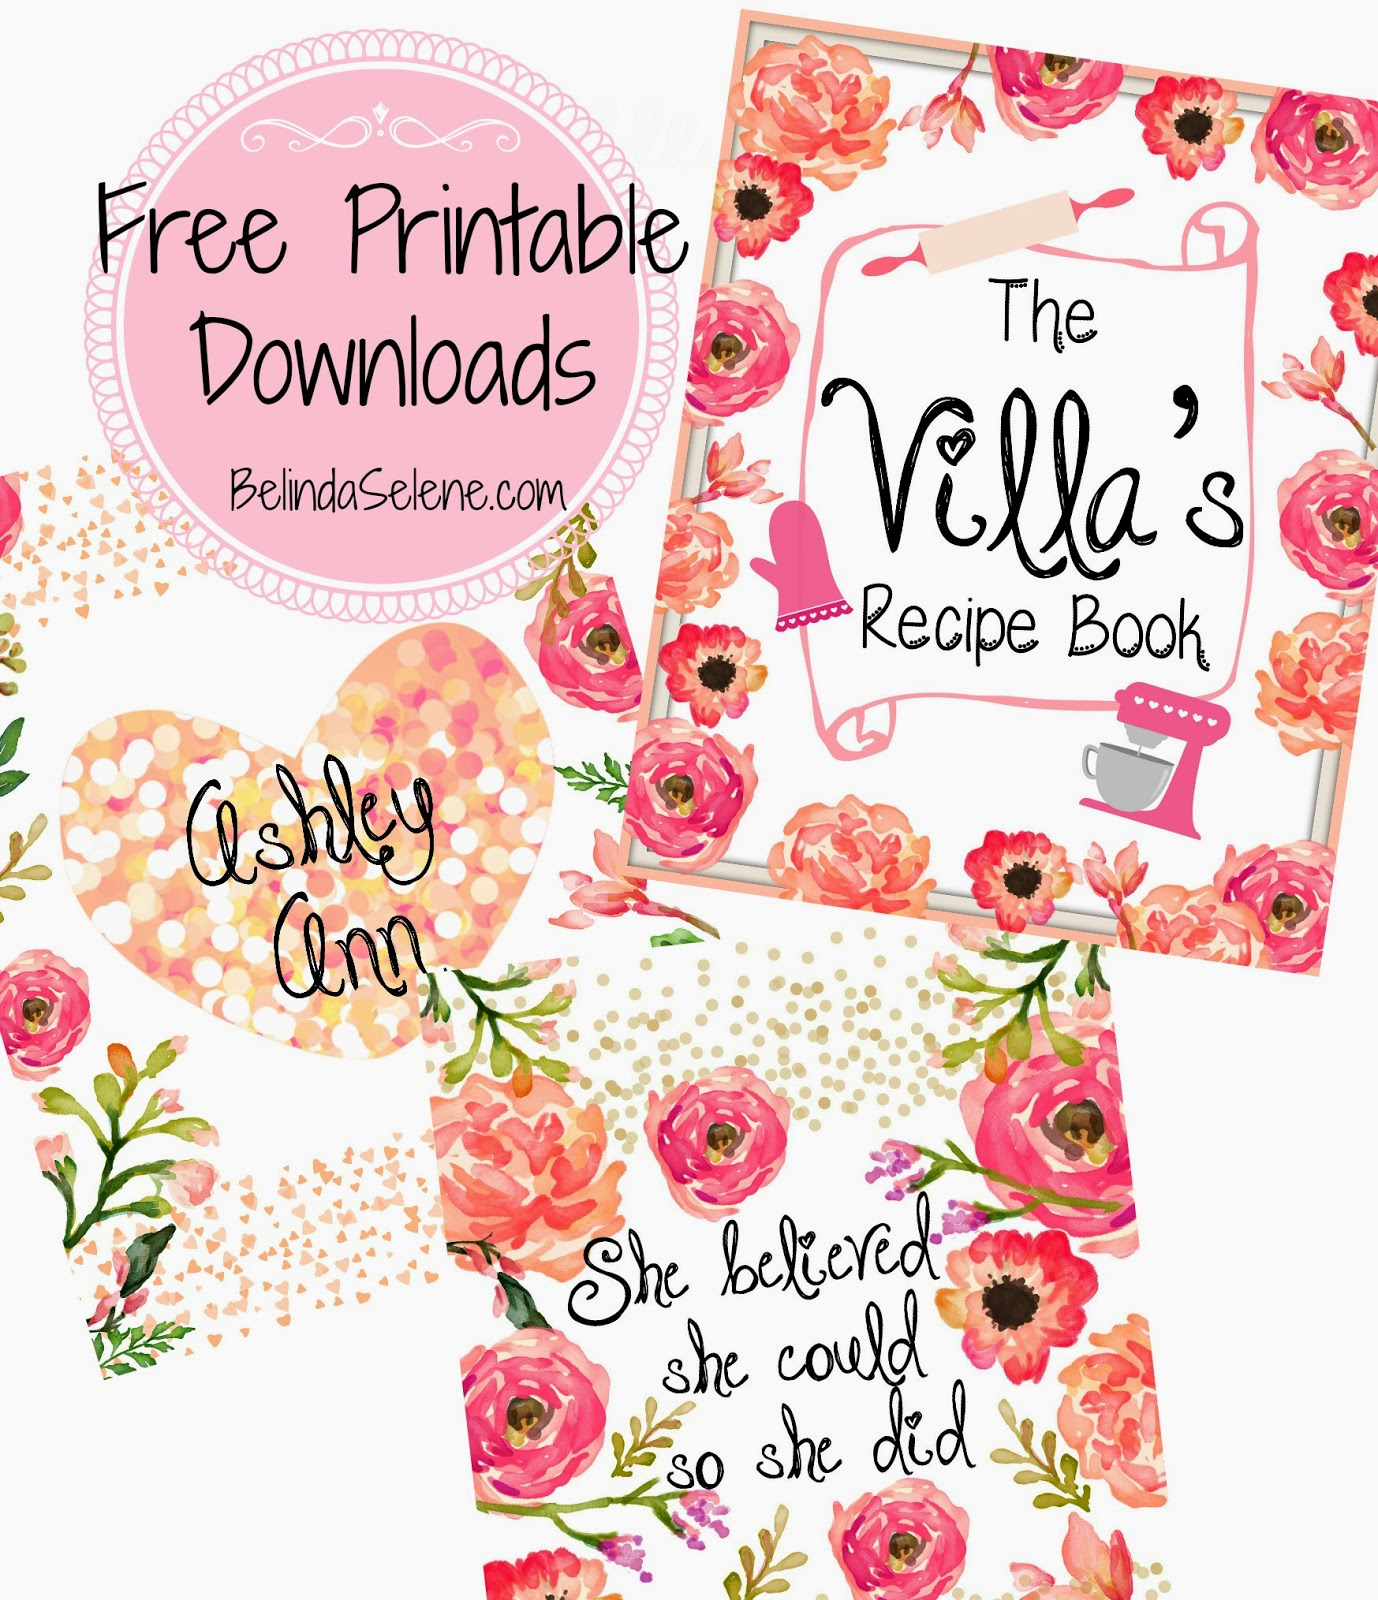 Printable Cookbook Cover : Belindaselene free gorgeous printable covers for erin